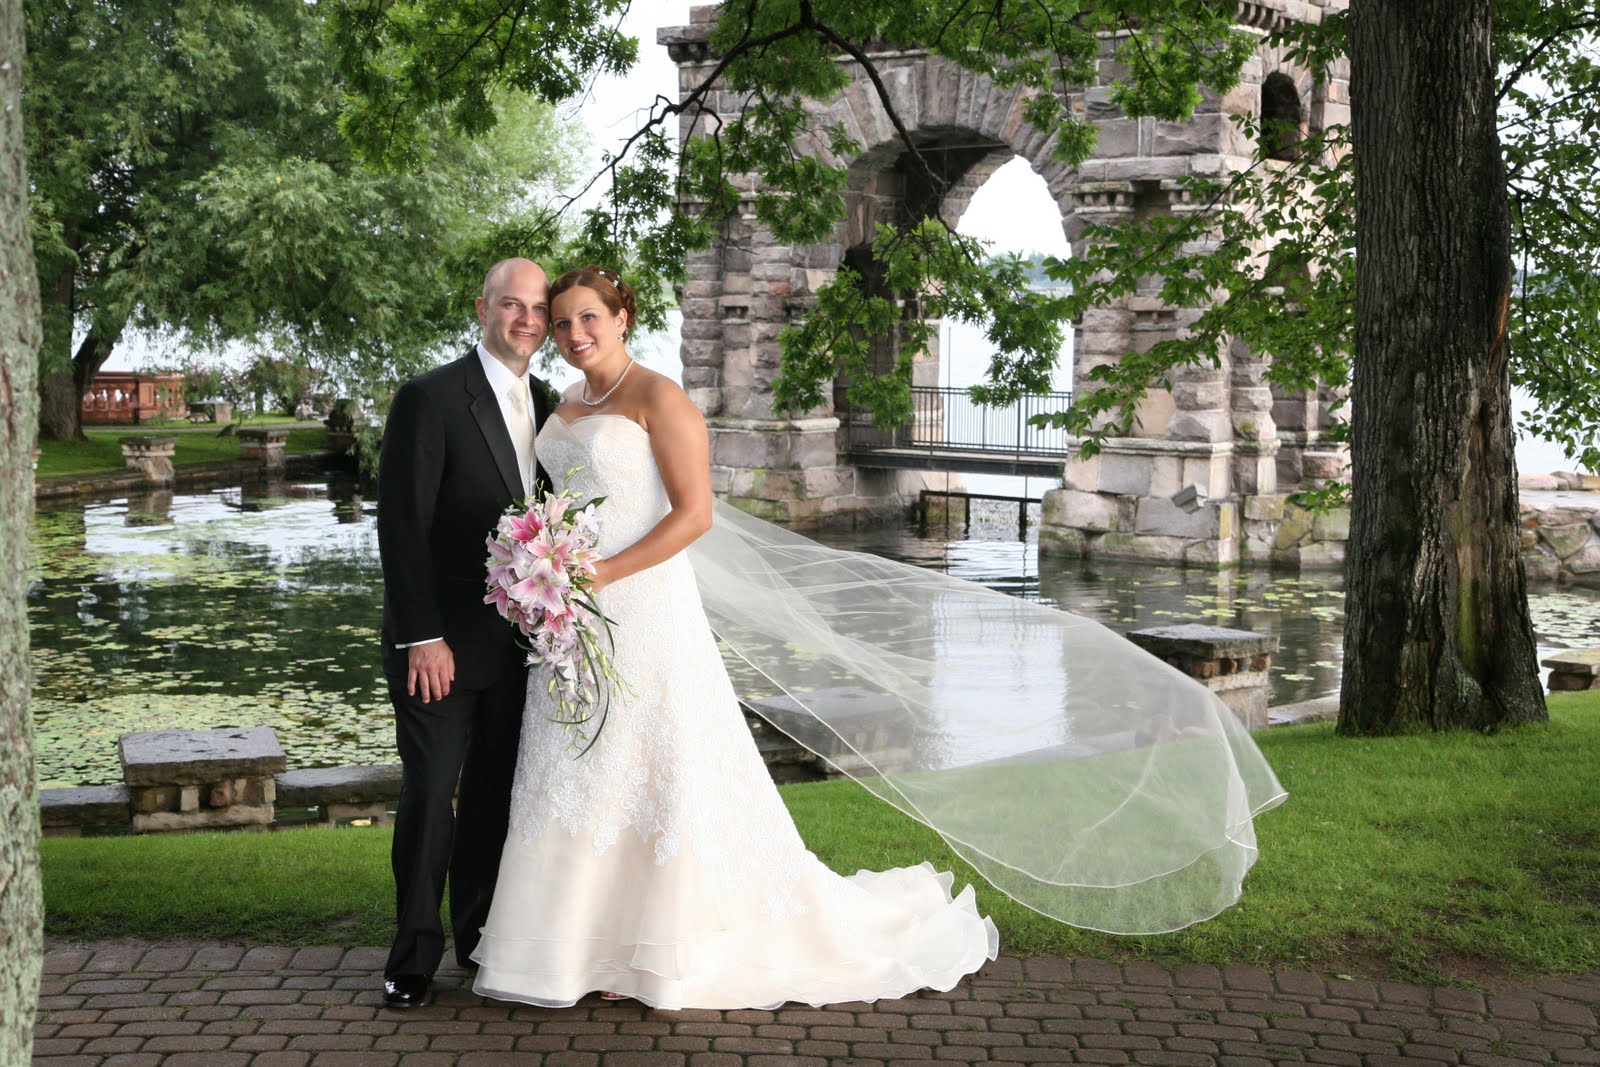 boldt castle located in alexandria bay ny 1000 islands is our favorite place to photograph weddings